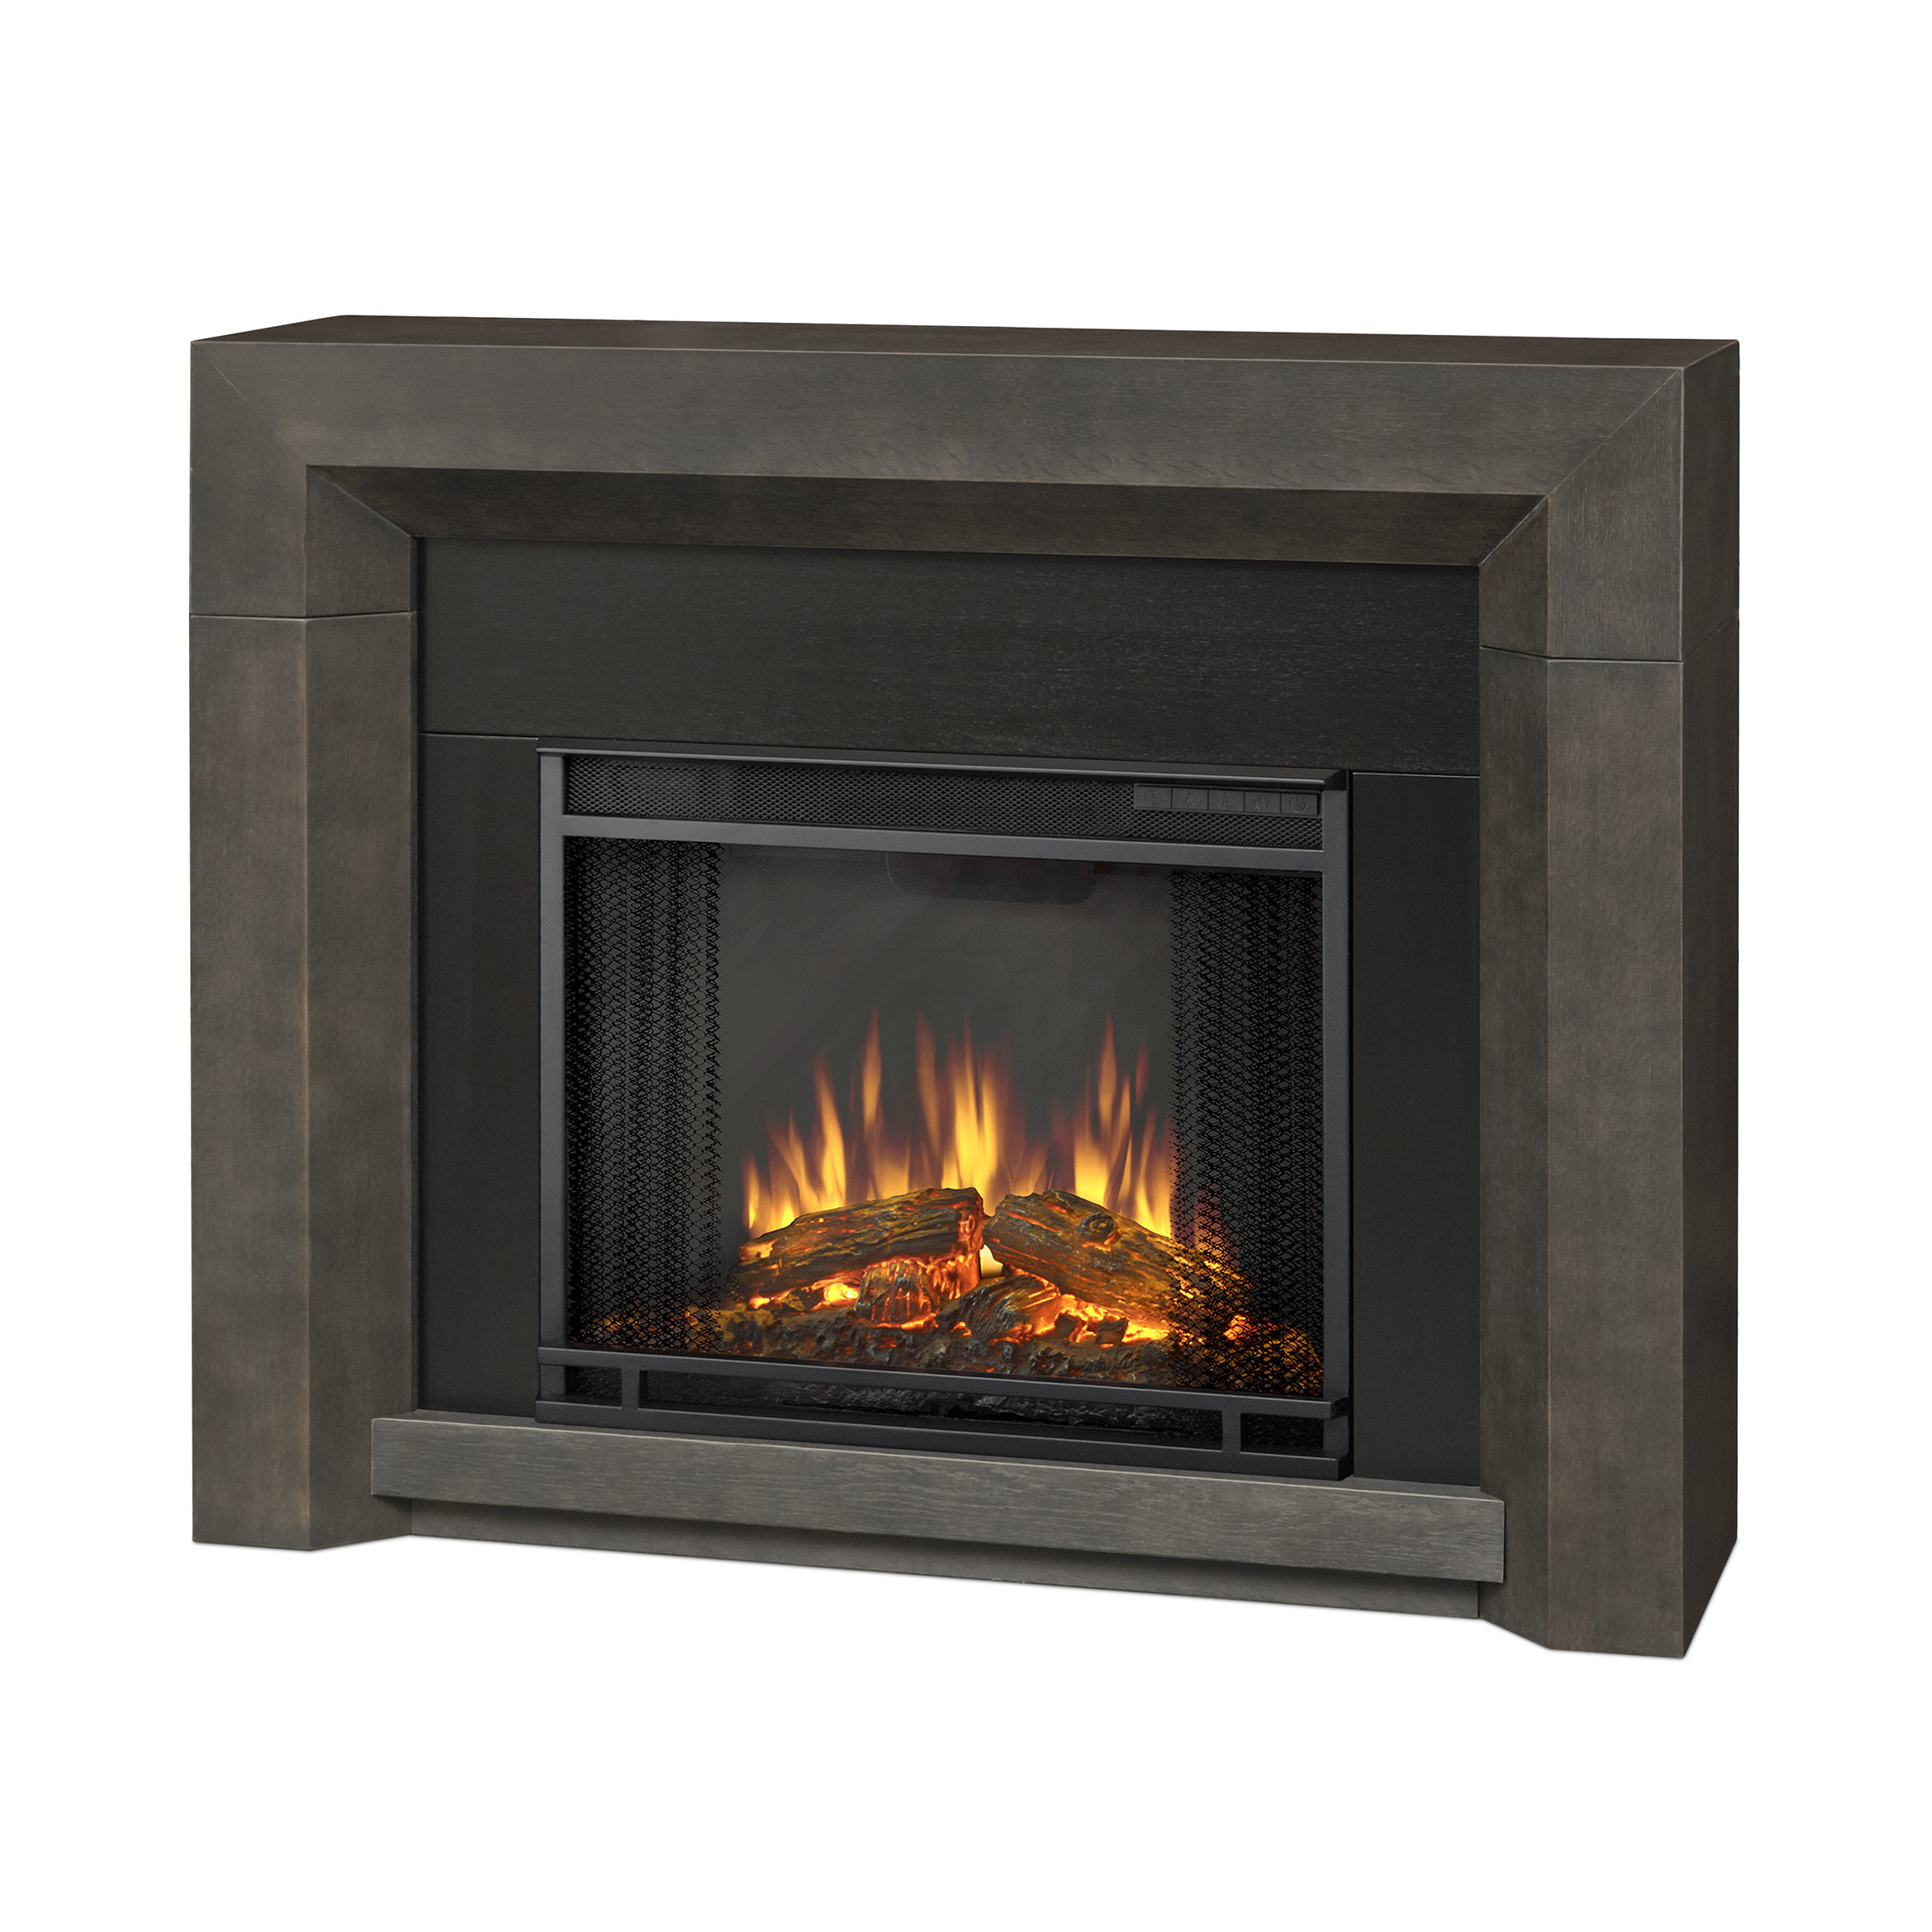 Best ideas about Real Flame Electric Fireplace . Save or Pin Real Flame Hughes Electric Fireplace Now.